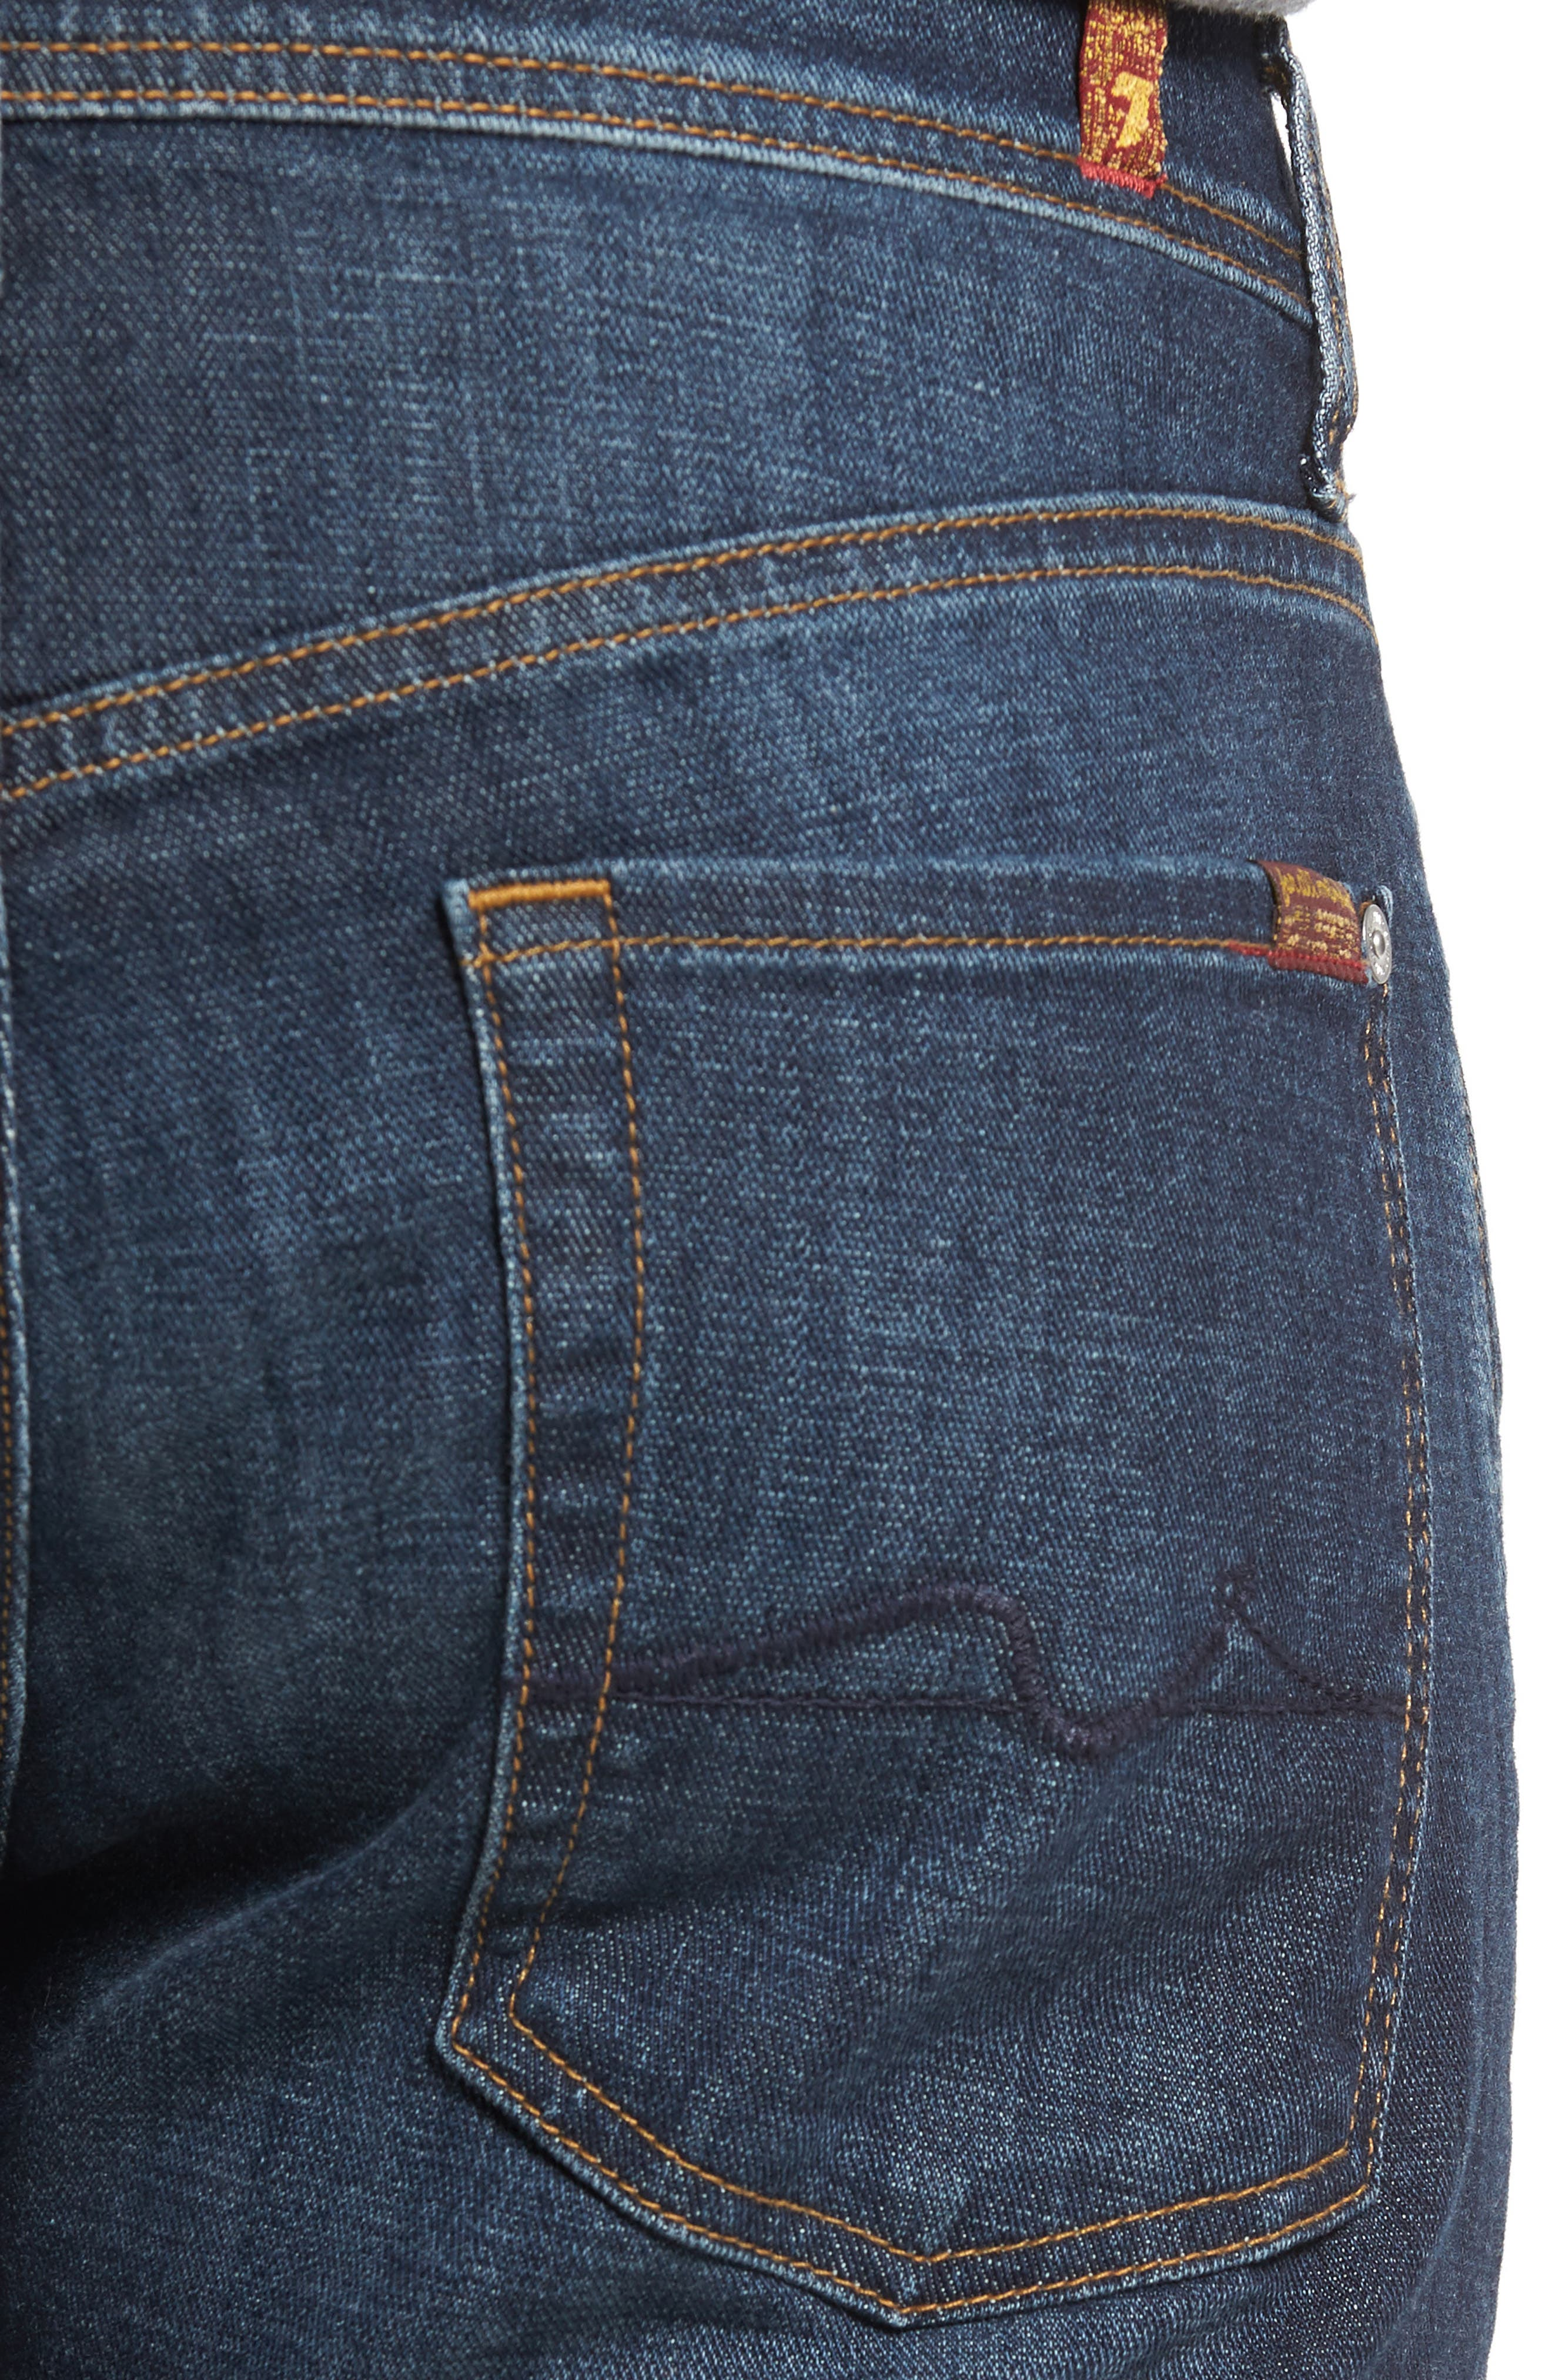 Standard Straight Fit Jeans,                             Alternate thumbnail 4, color,                             Foster